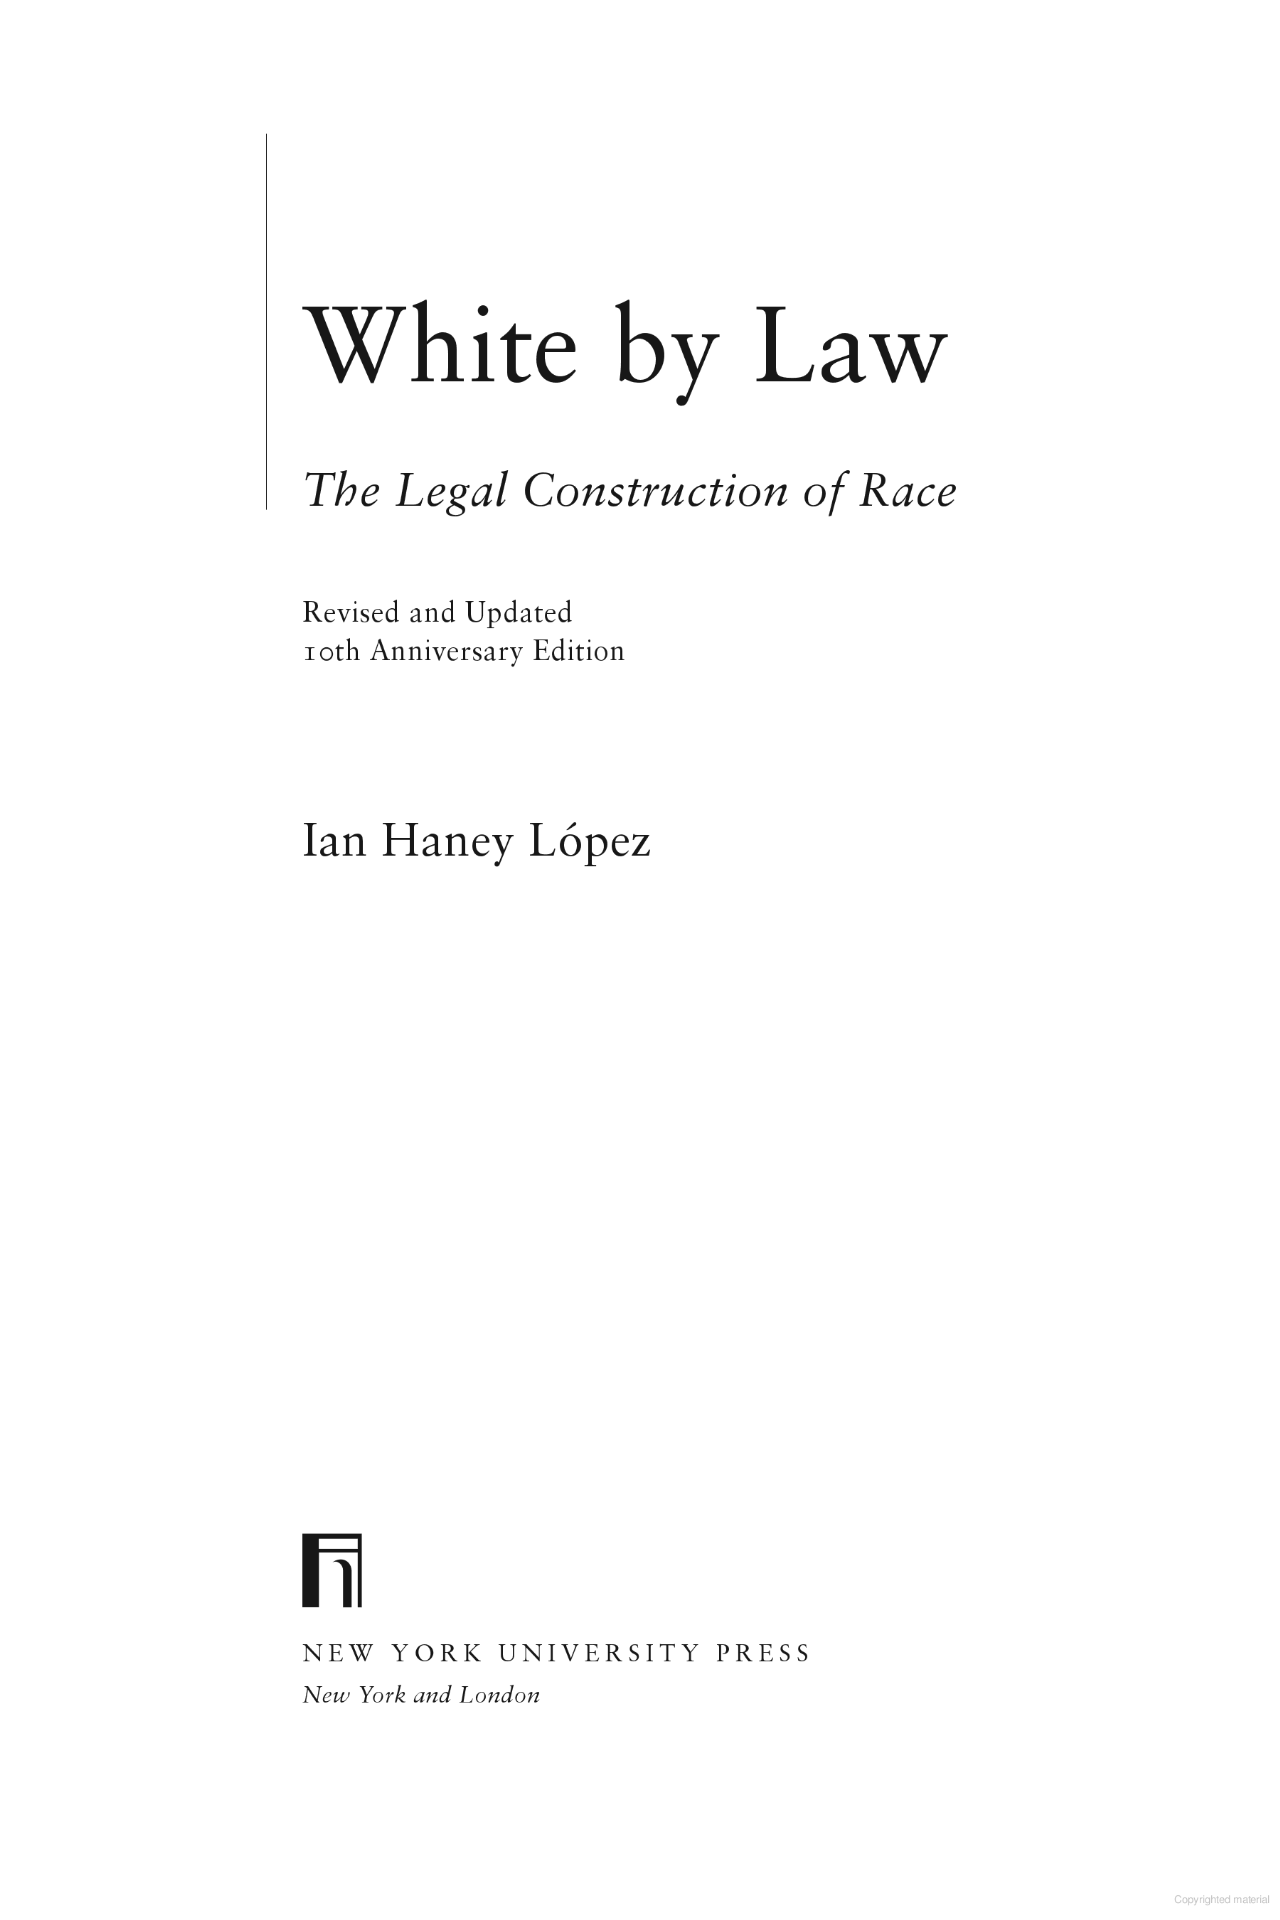 White by Law: The Legal Construction of Race, by Ian Haney Lopez